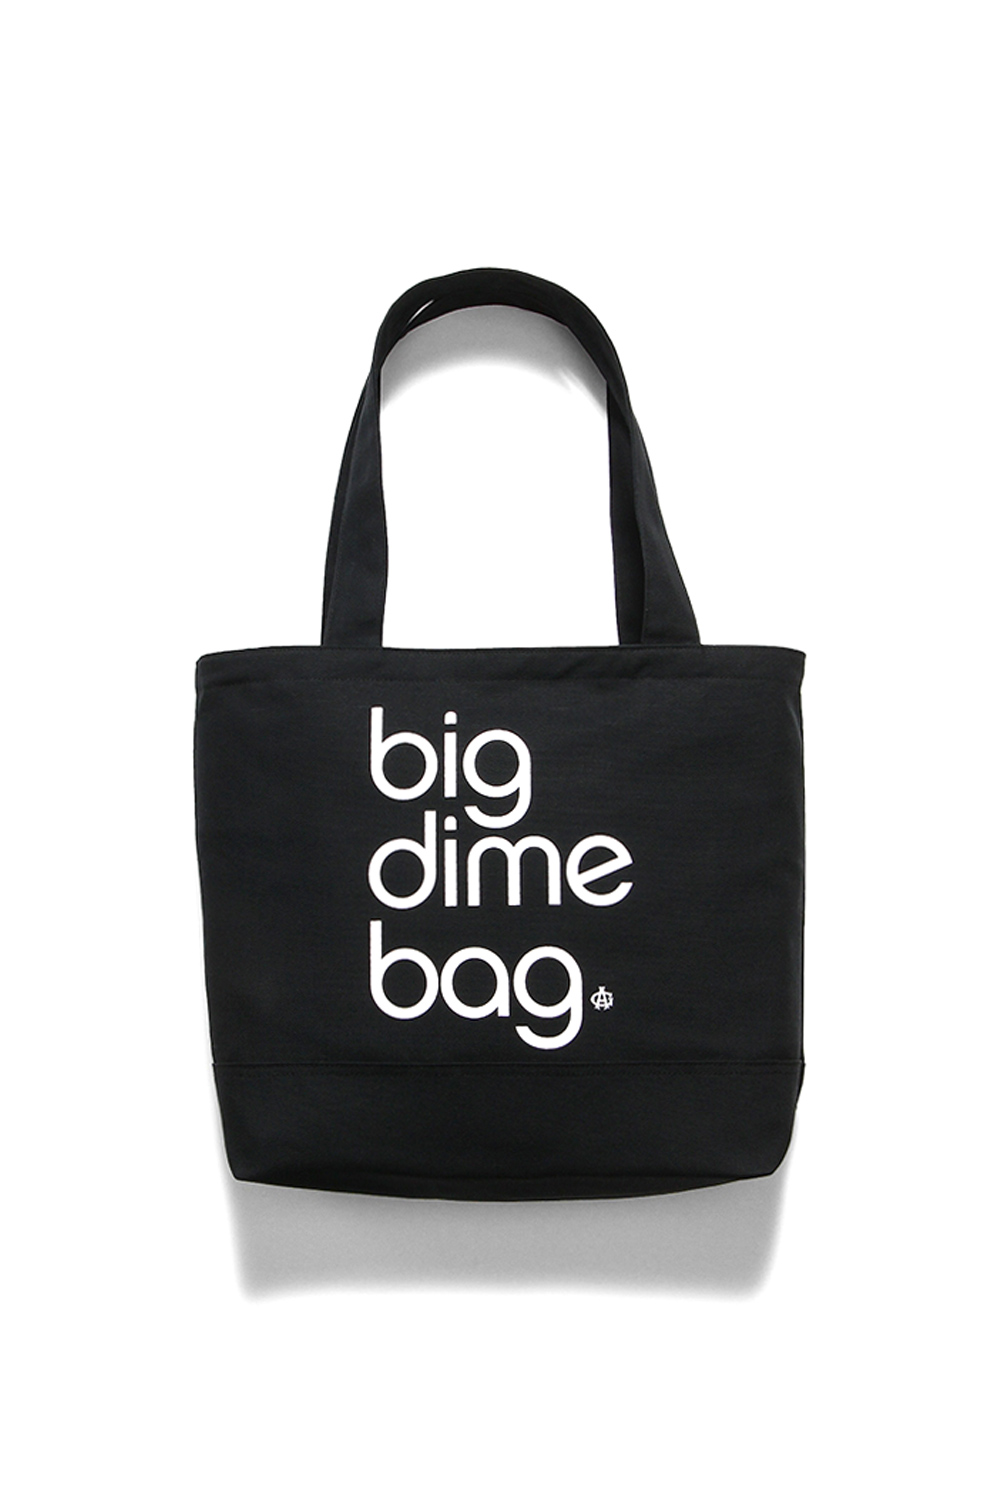 画像1: 【ACAPULCO GOLD】BIG DIME BAG TOTE (1)